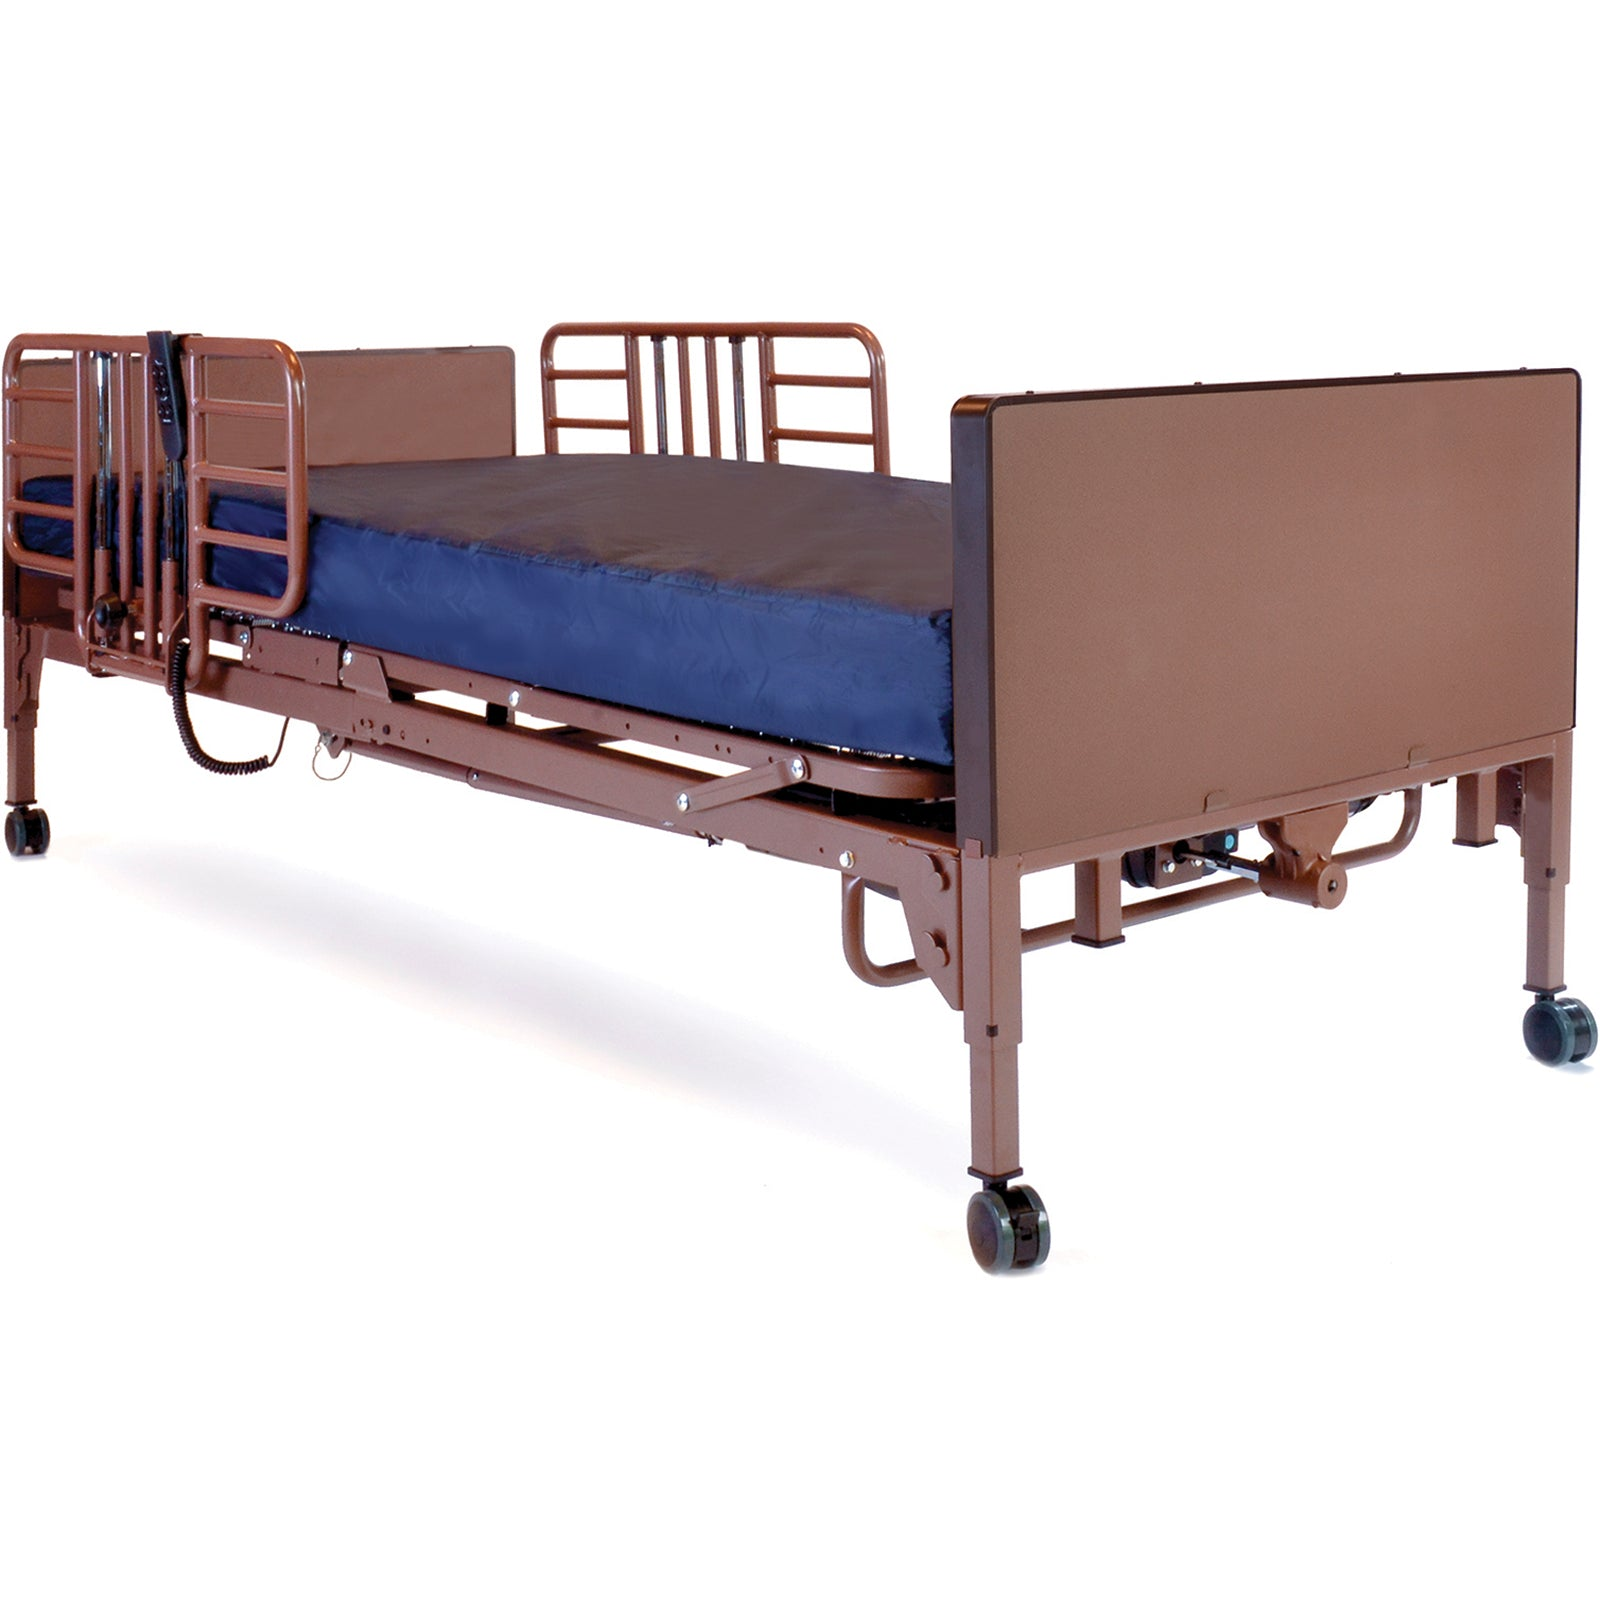 Compass Health: ProBasics Full Electric Bed w/ Probasics Low Bed Ends - PBFE-HRGP1PKG